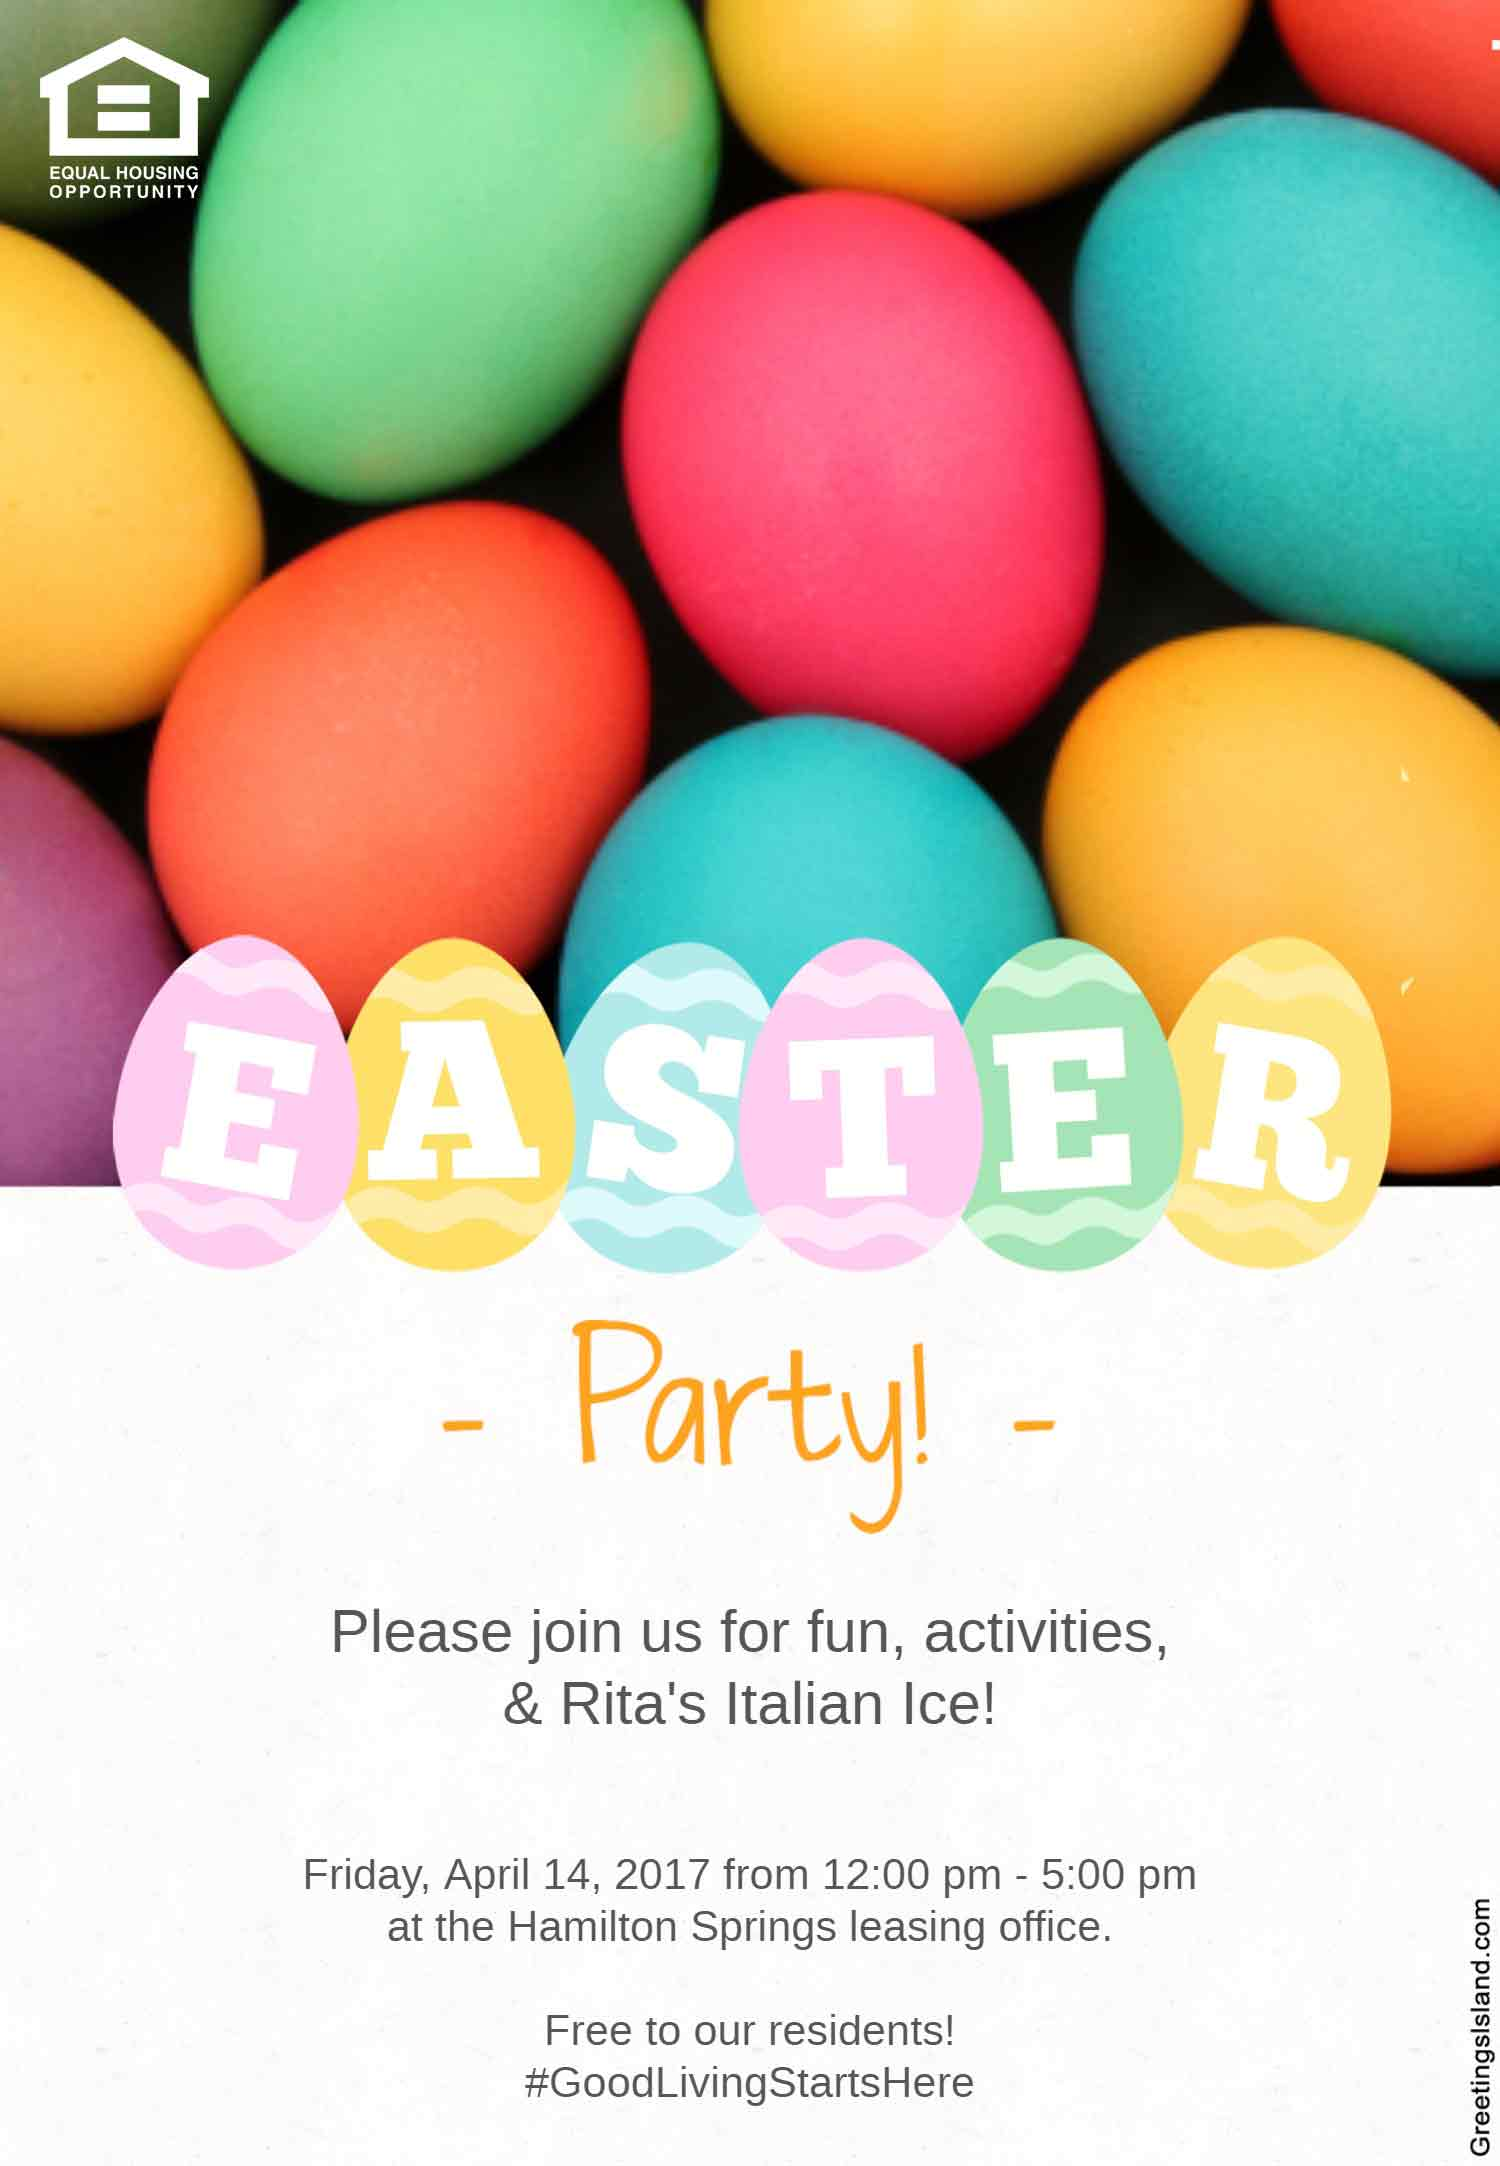 Hamilton Springs Apartments Easter Party in Baltimore, MD